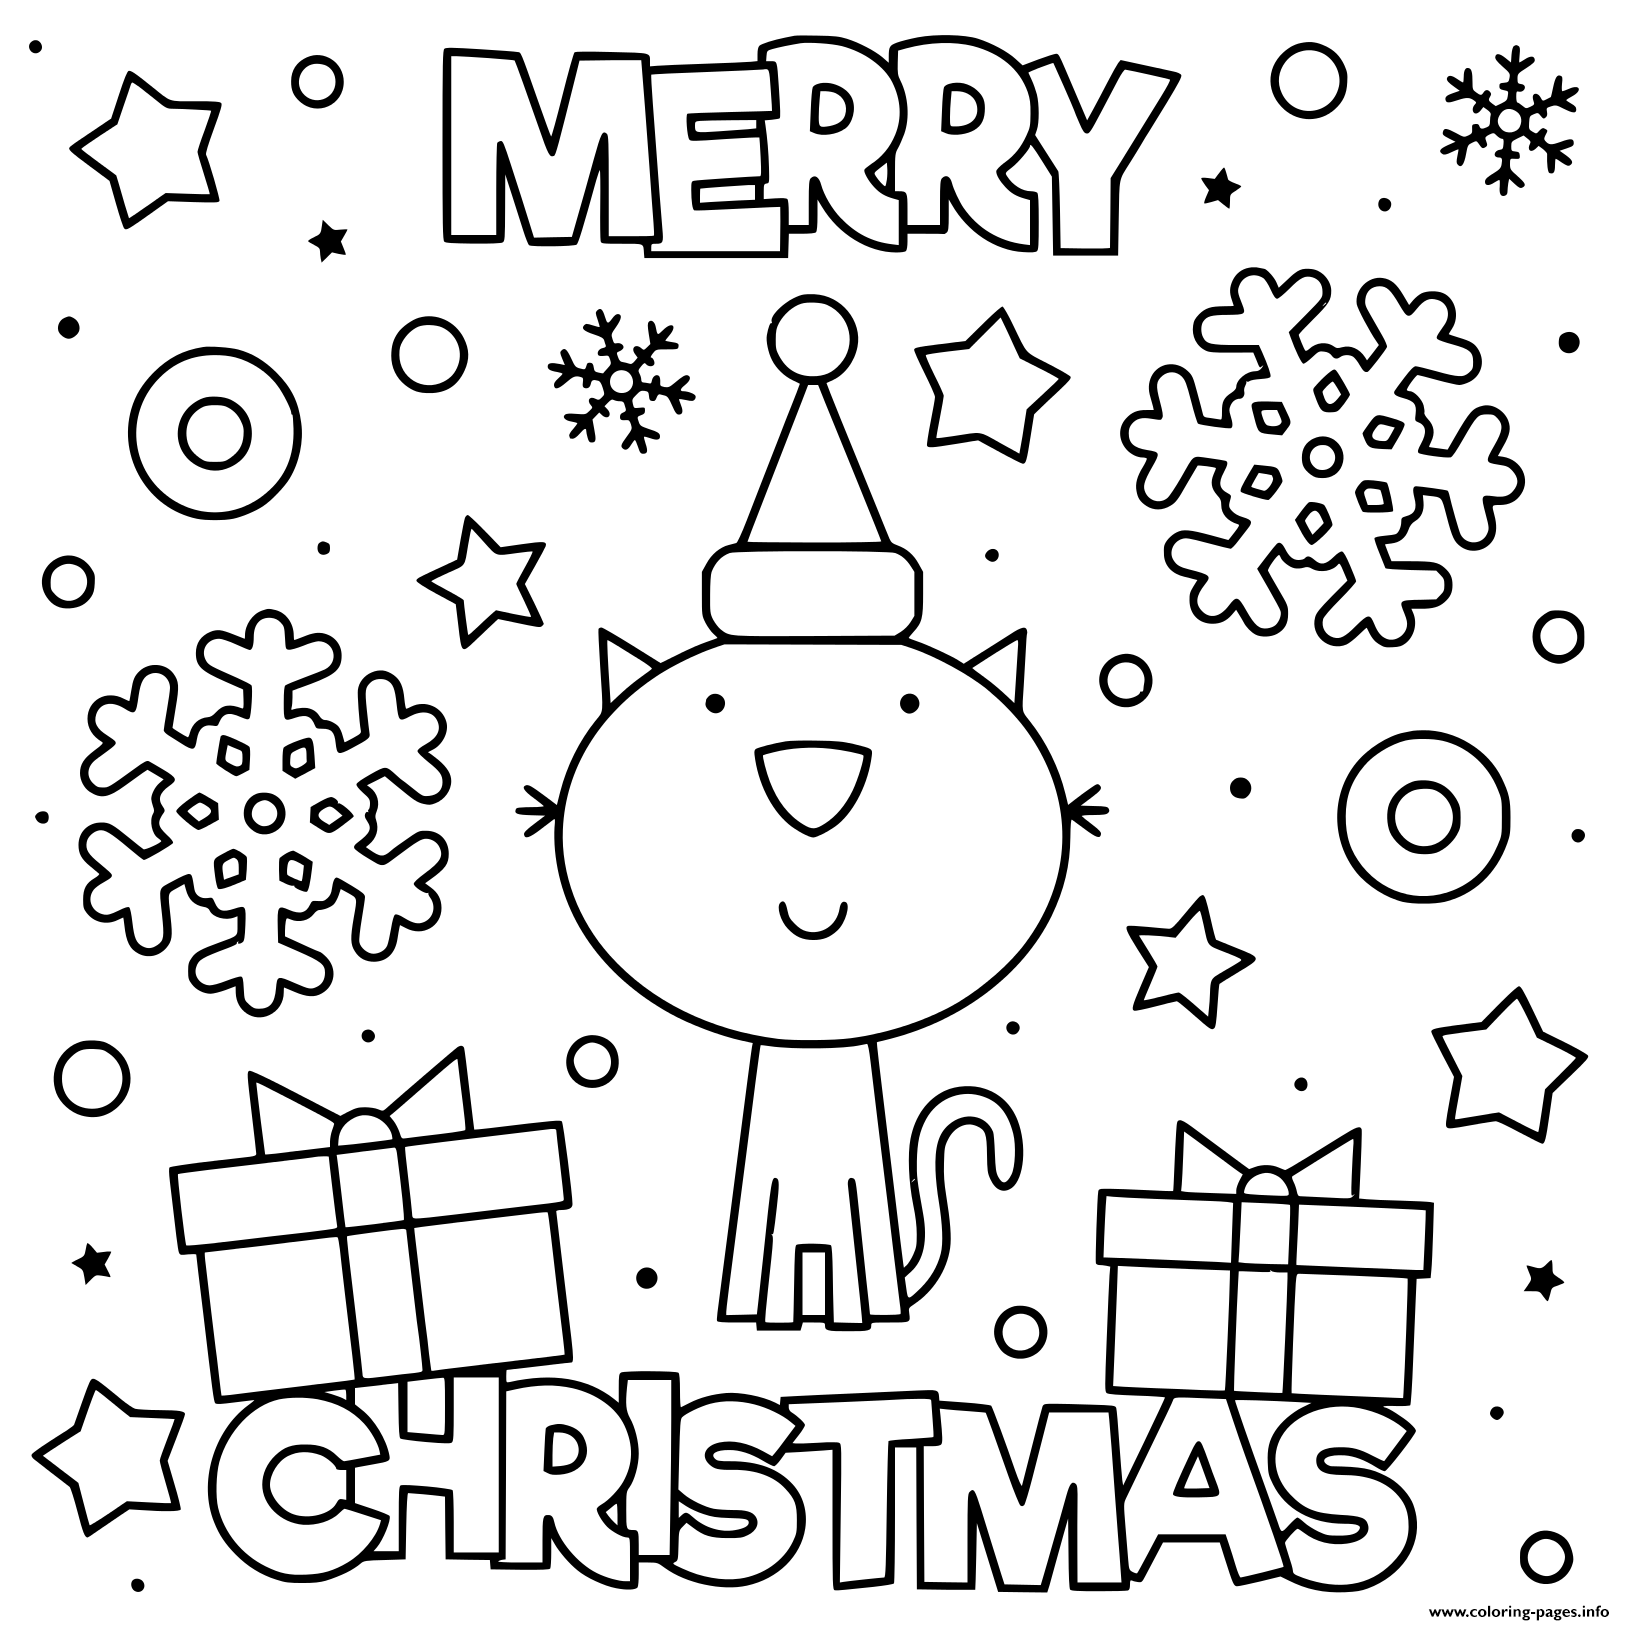 Cute Cat Wish Merry Christmas Coloring Pages Printable